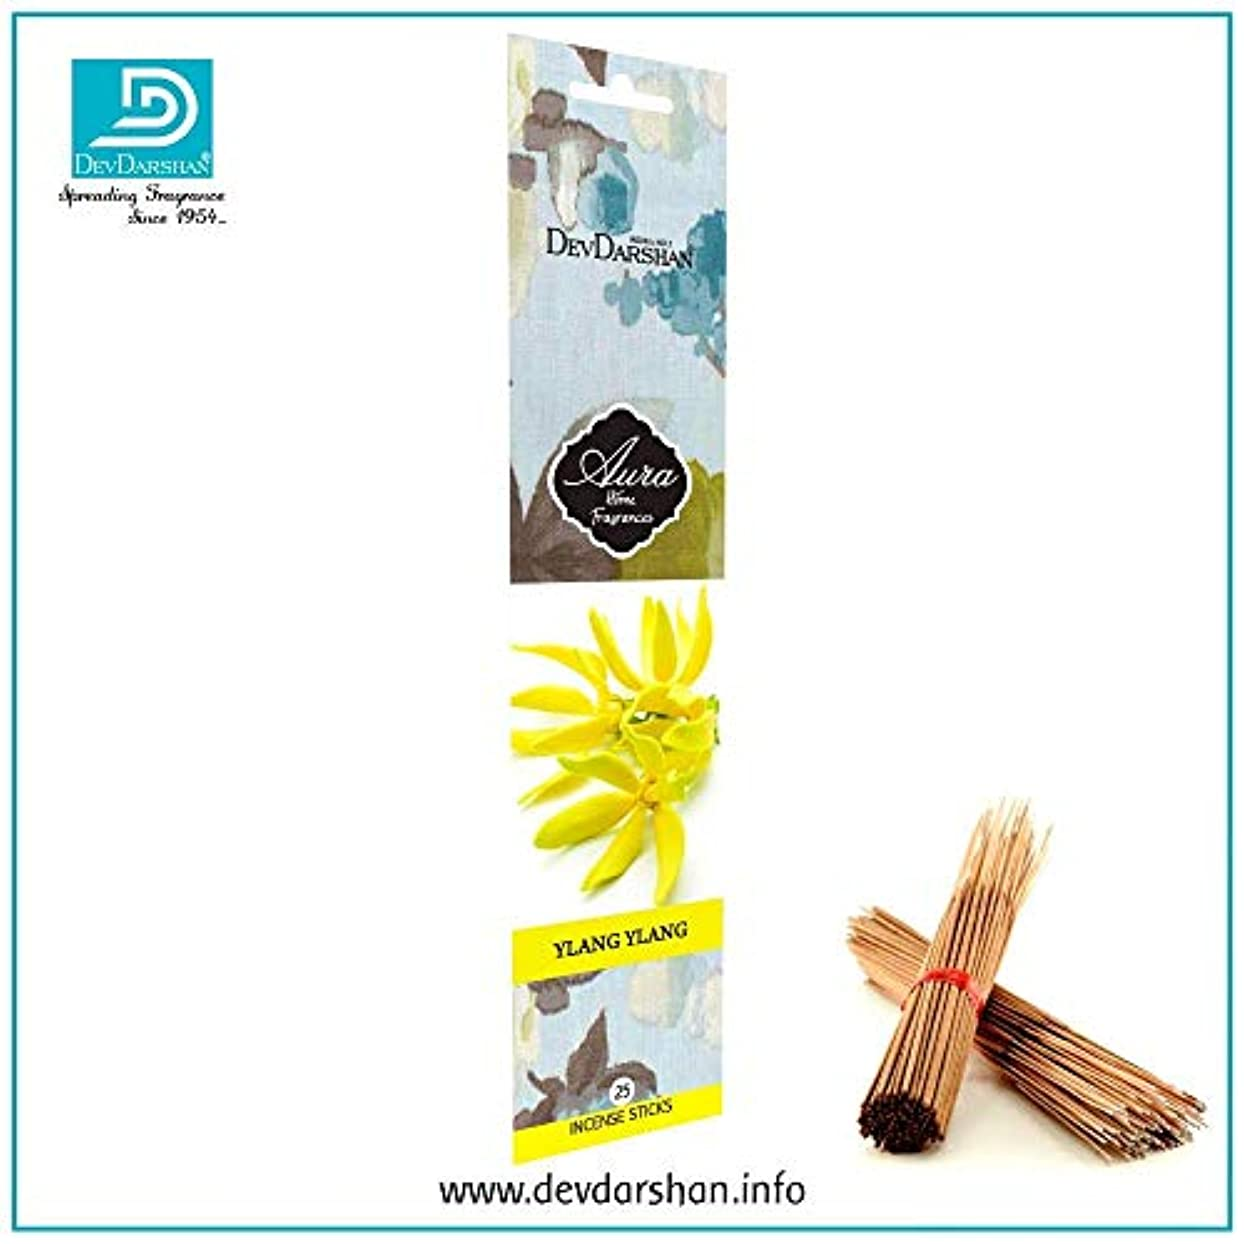 移動する退却考えDevdarshan Aura Ylang Ylang 3 Packs of 25 Incense Stick Each